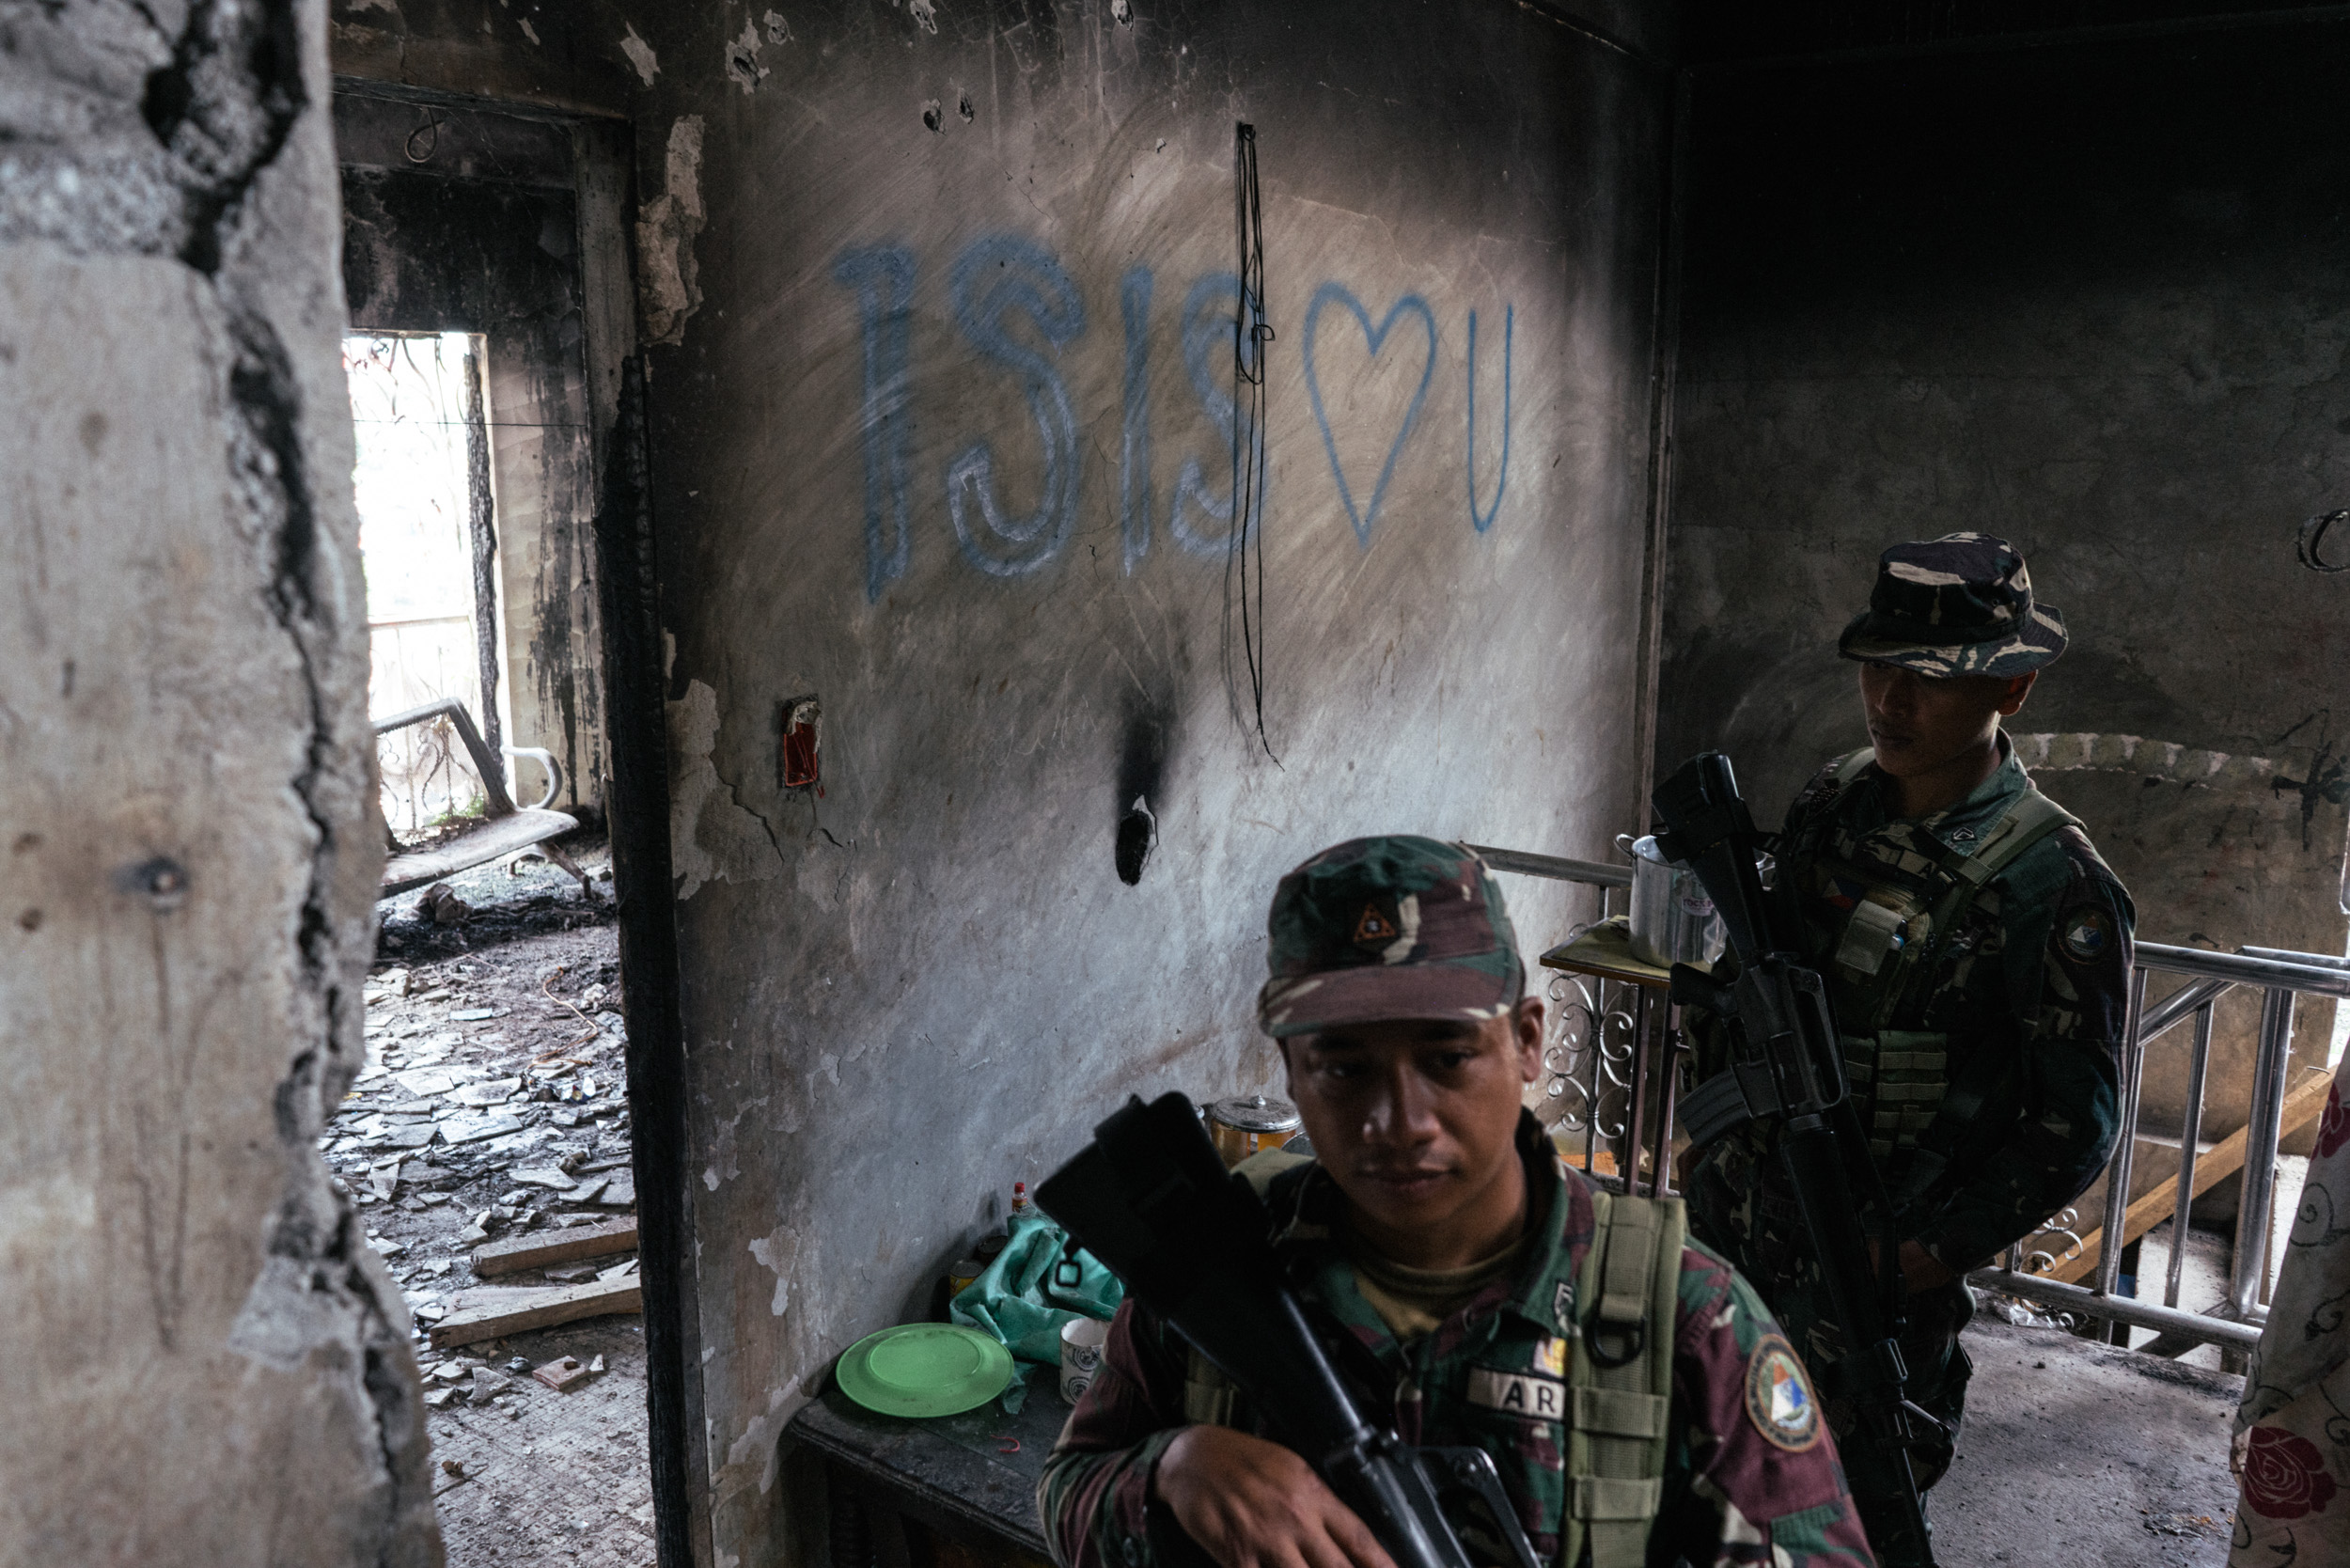 MARAWI CITY, PHILIPPINES. NOVEMBER 15. Filipino soldiers are seen by a wall with the graffiti 'ISIS  ? U' in Marawi, Philippines on November 15, 2017. Marawi  City is in ruins after Islamic State (IS) inspired militants laid siege to the city in a battle that lasted for five months, displacing hundreds of thousands of people. (Photo by Hannah Reyes Morales for The Washington Post)